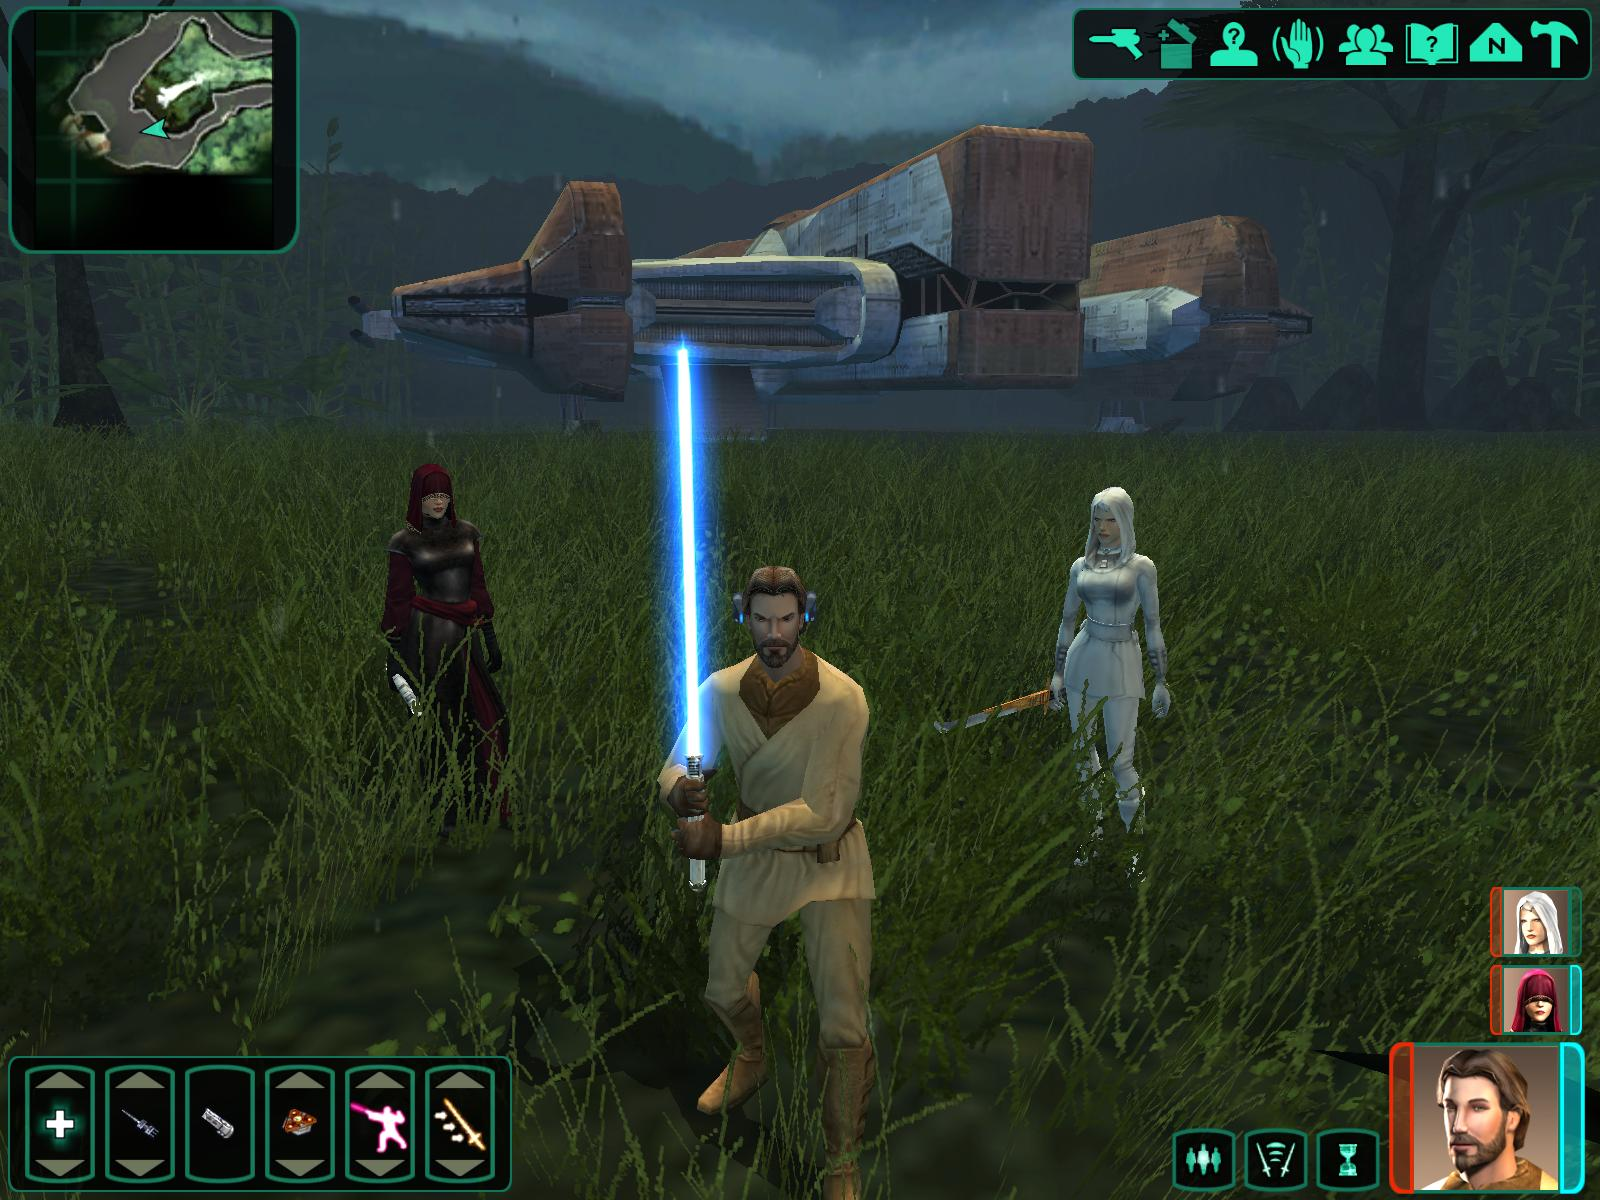 Star Wars: Knights of the Old Republic II: The Sith Lords - Wikipedia